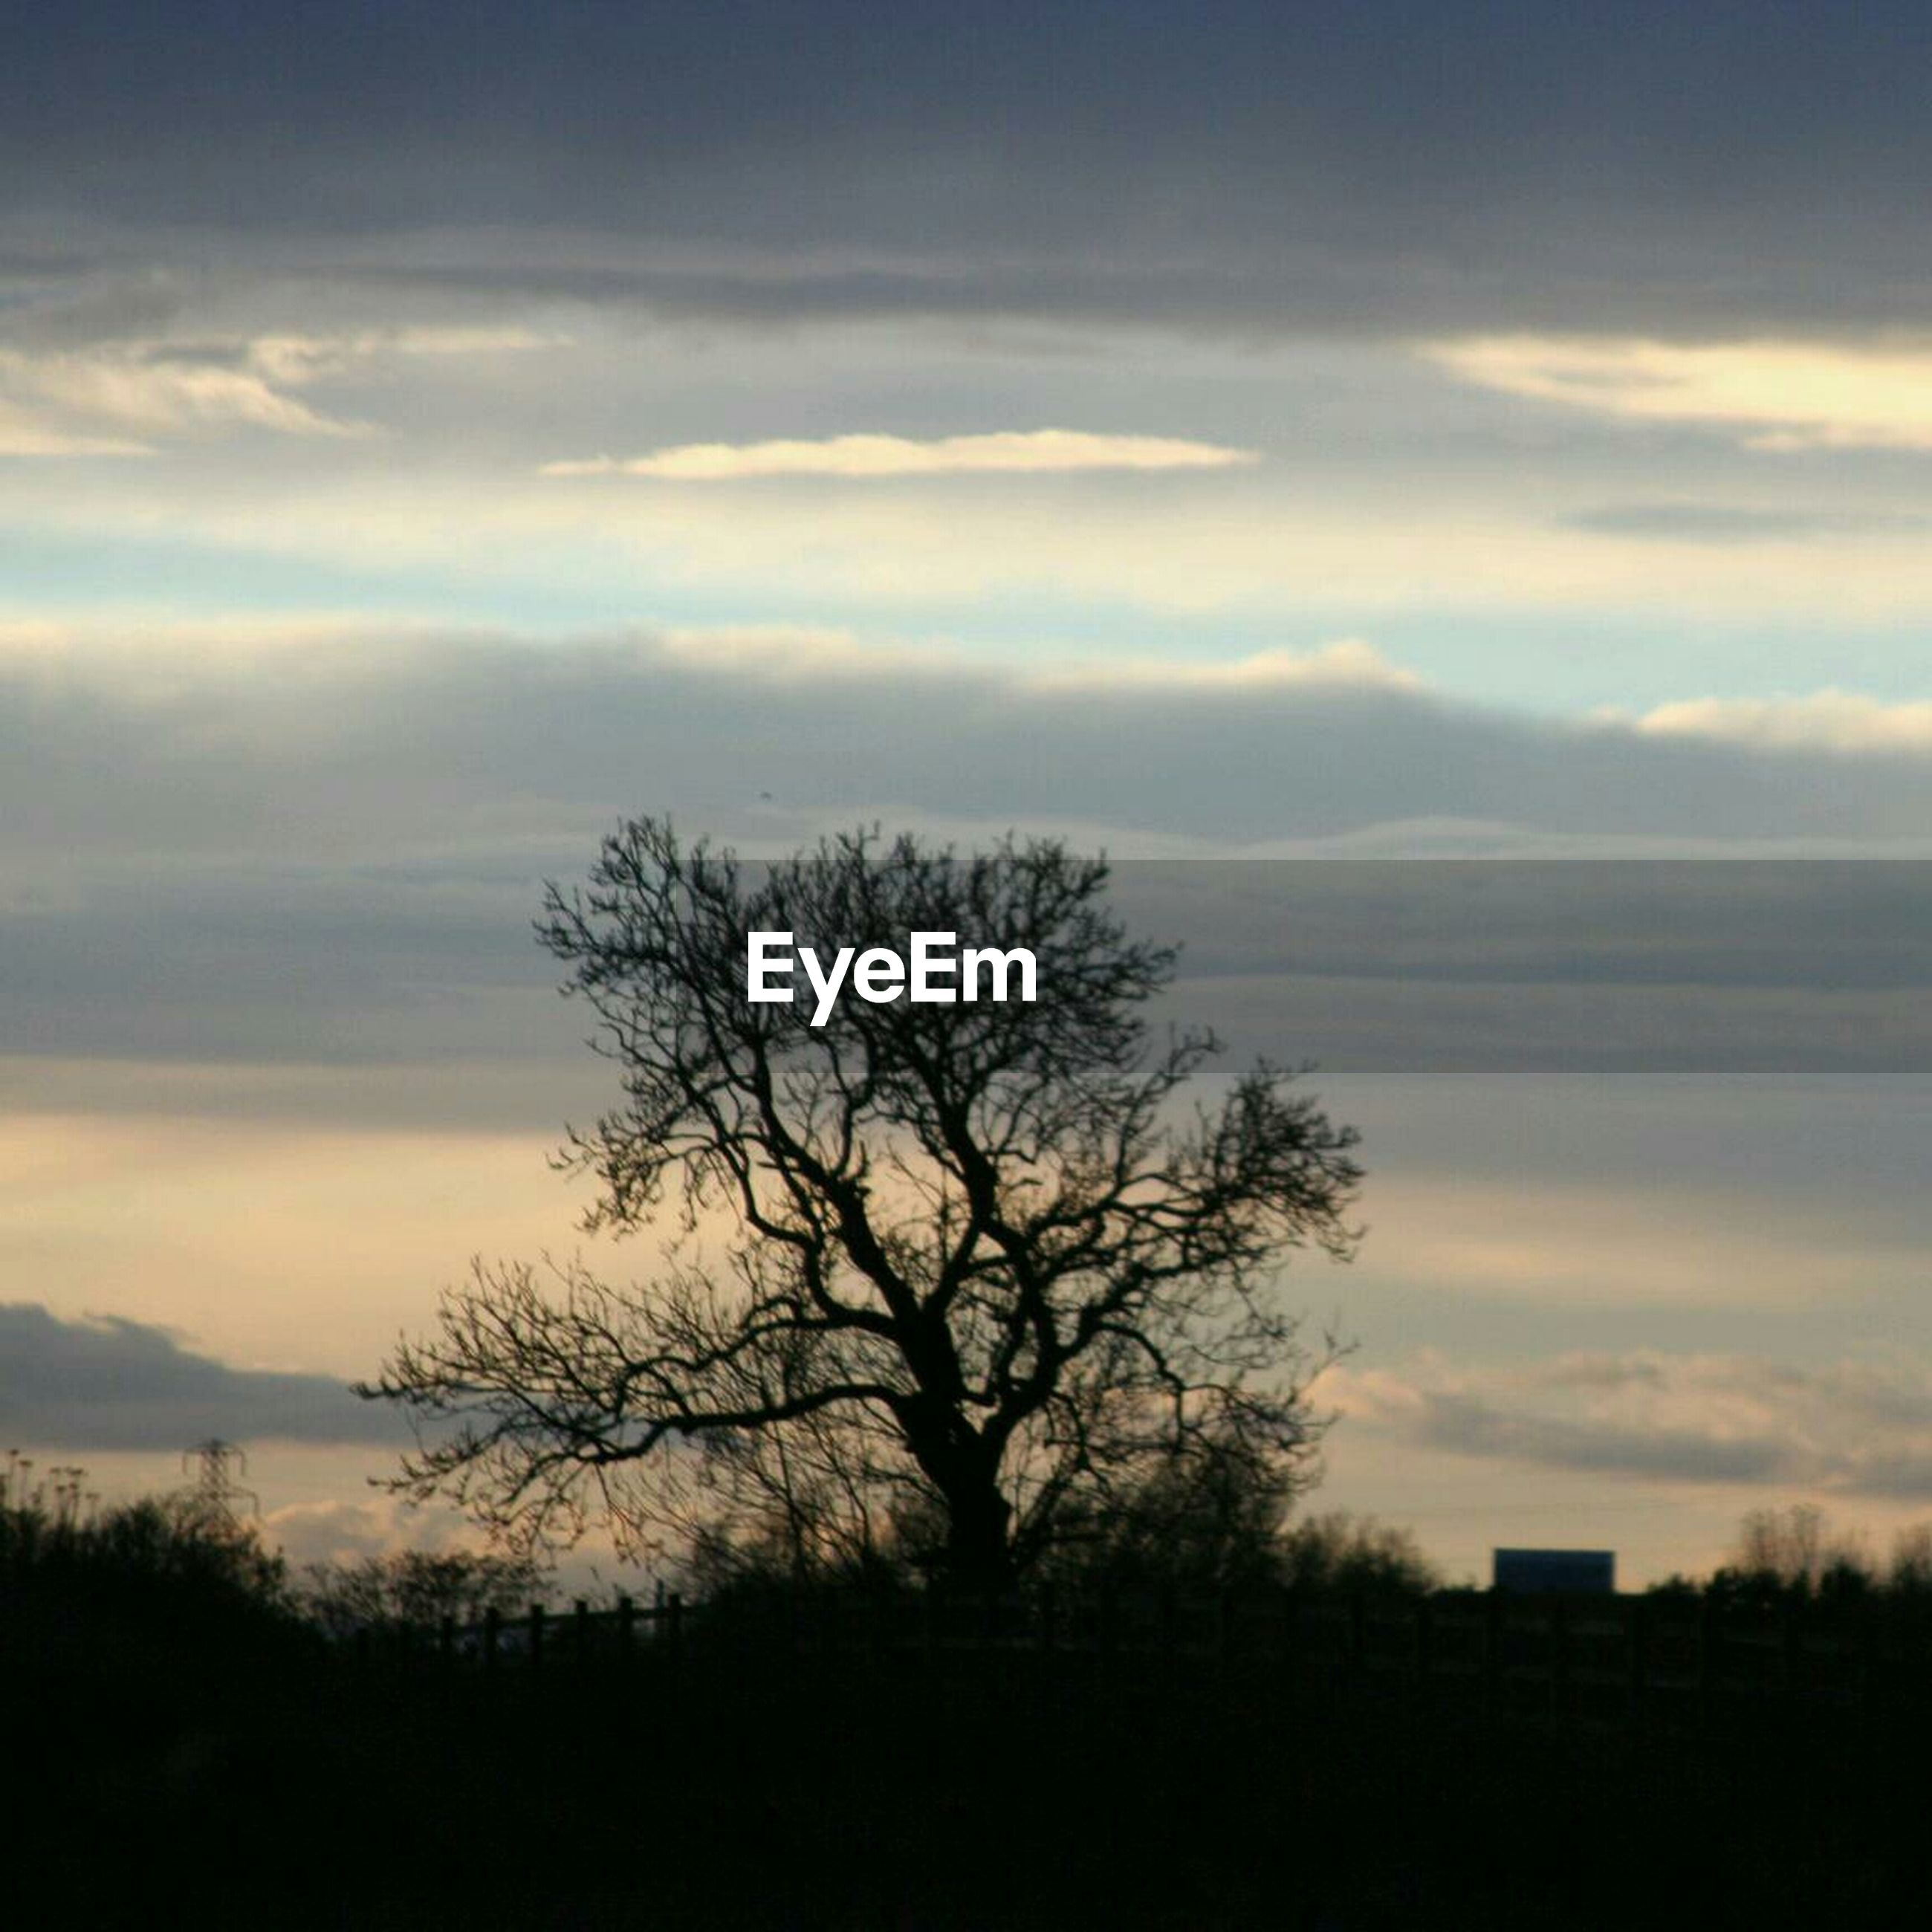 Silhouette tree with sky in background